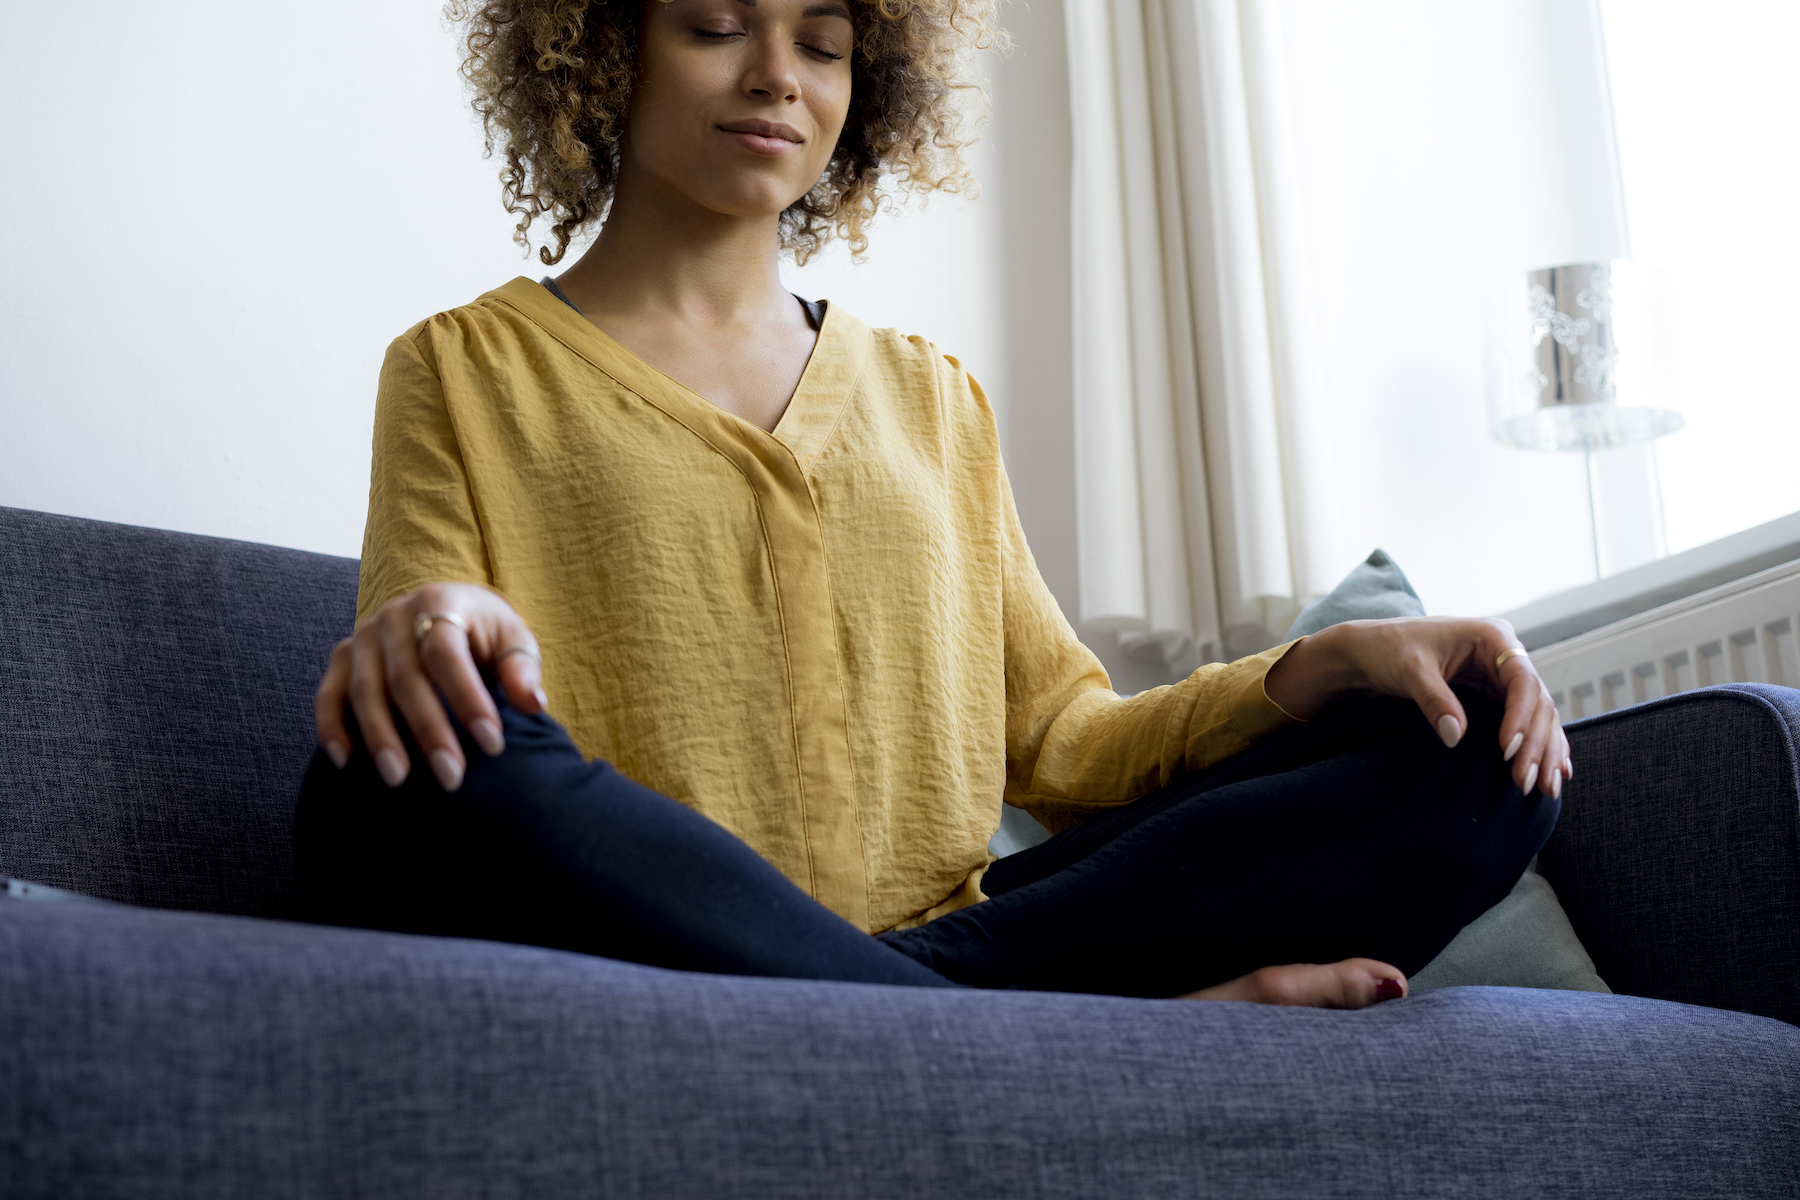 Breathing Exercises for Anxiety, Woman Meditating on couch